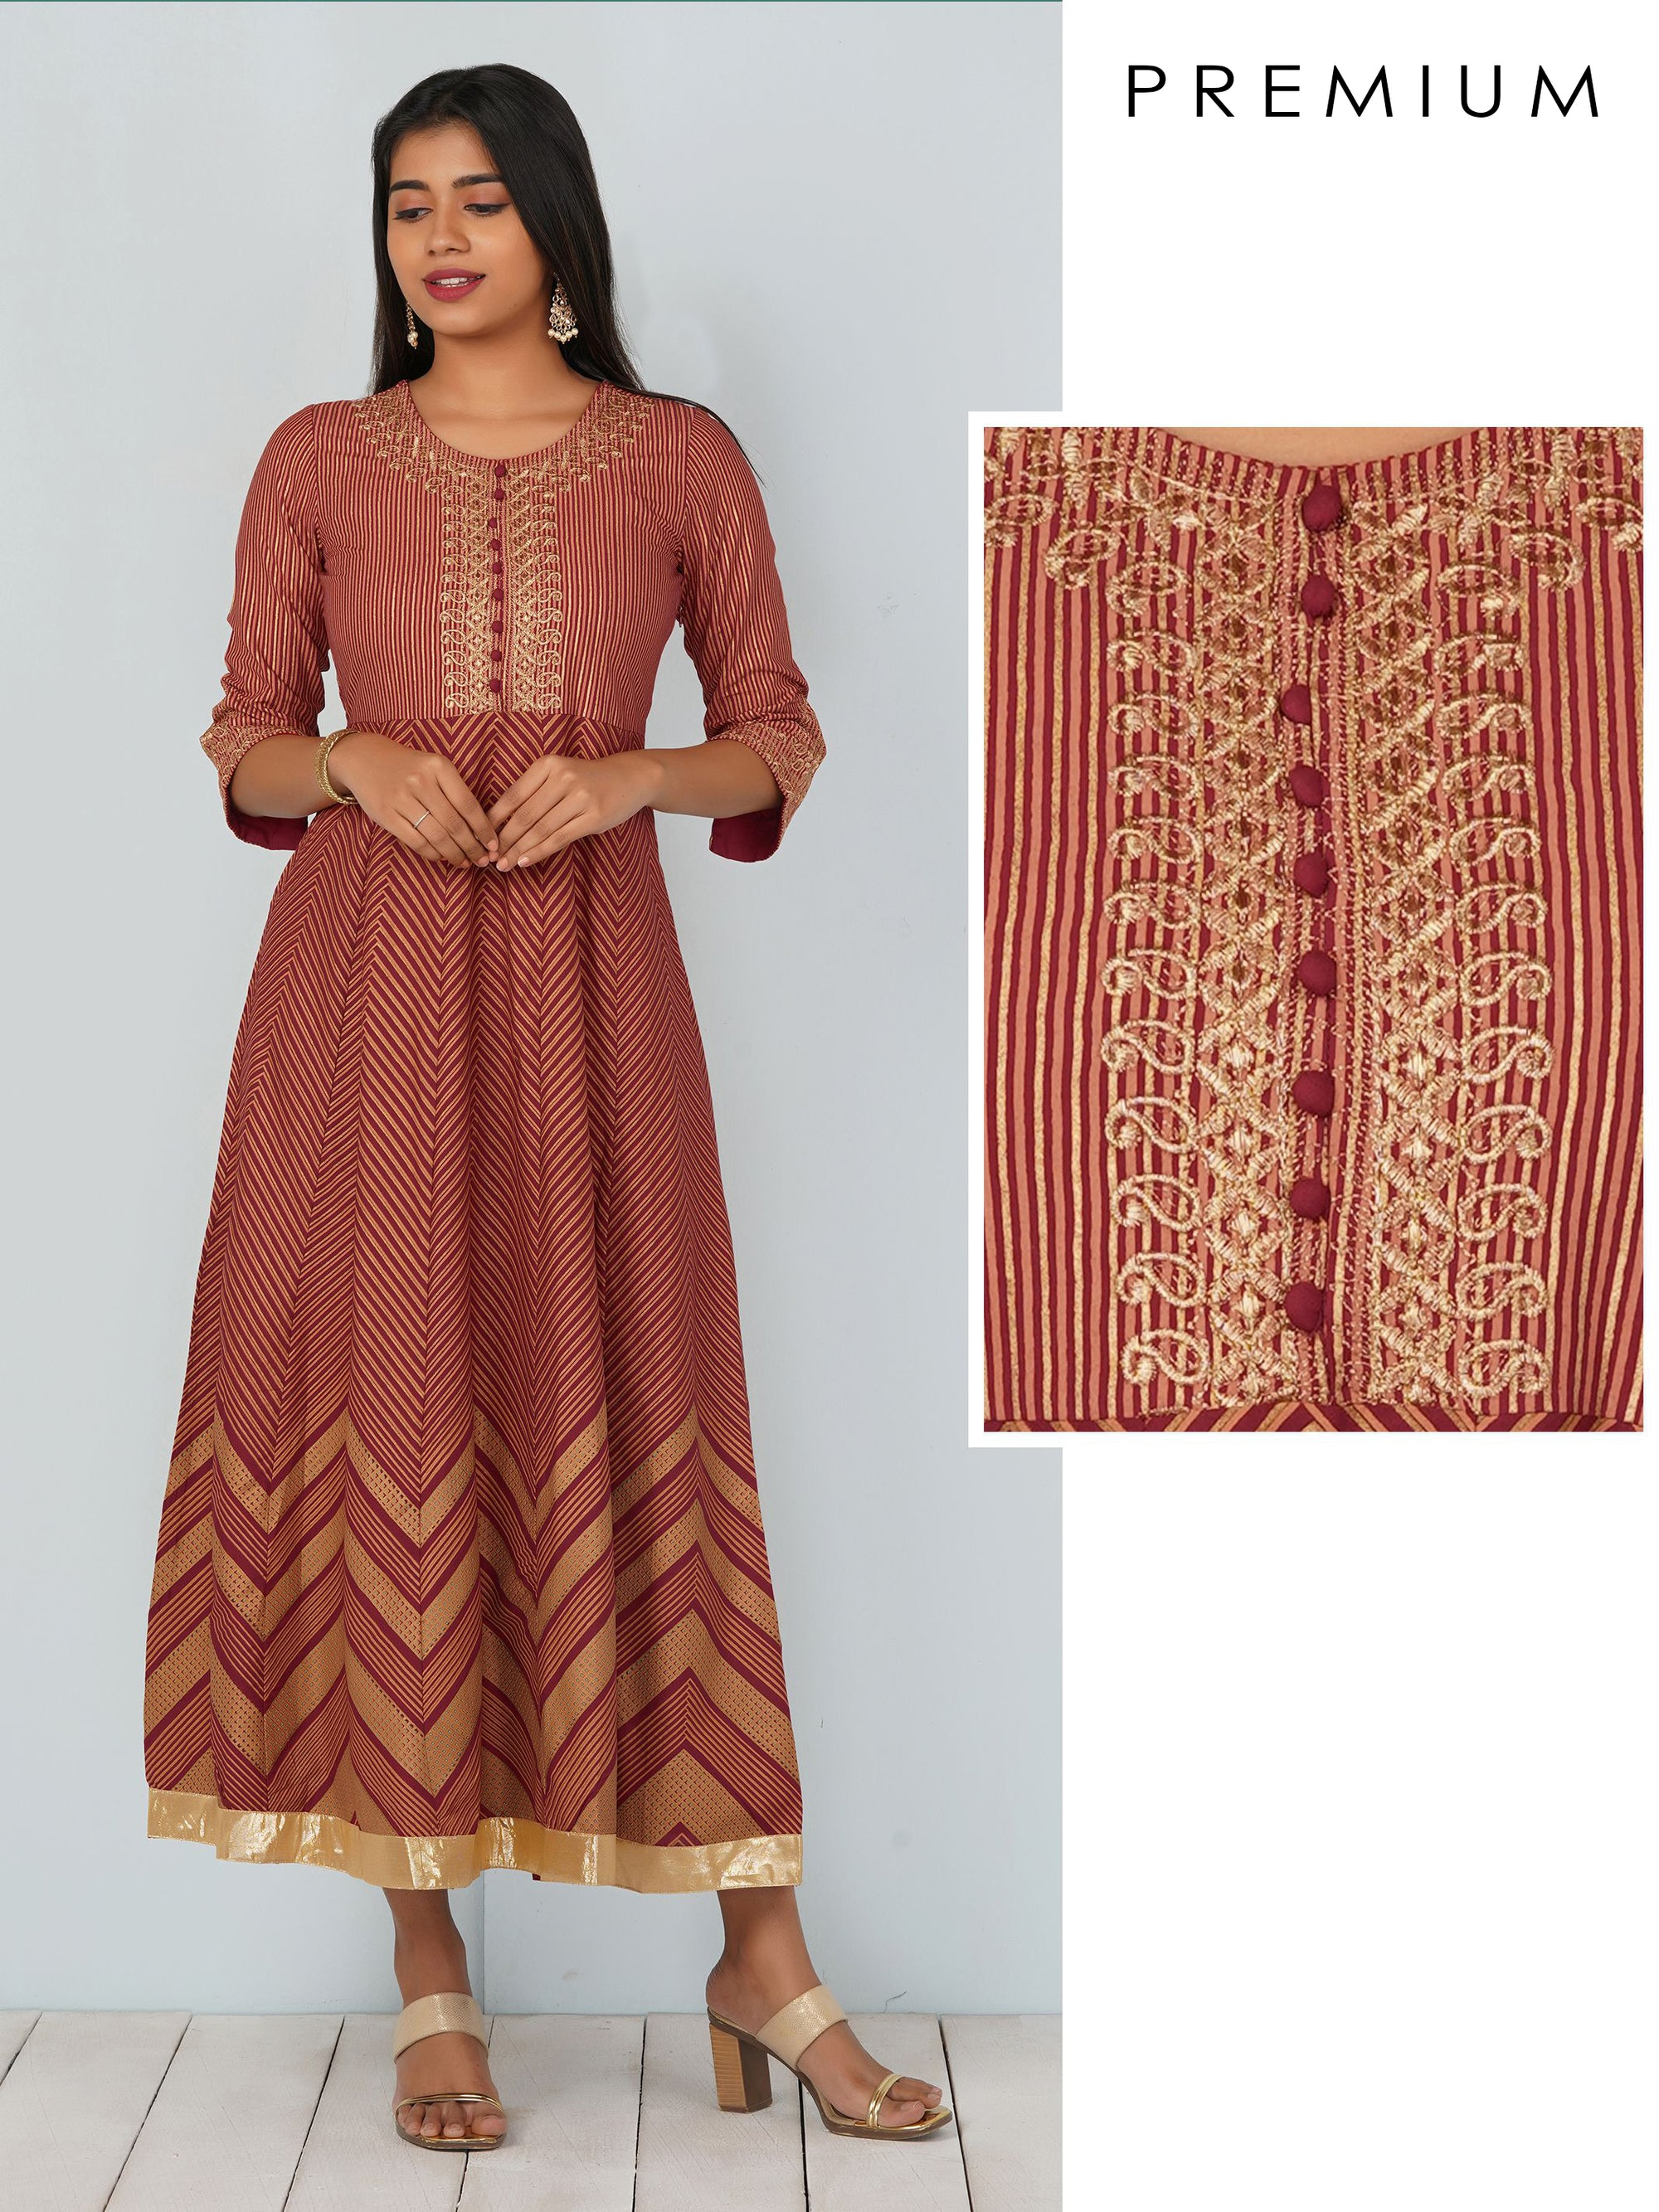 Gold Foil Chevron Print With Gold Zari Work Kurti